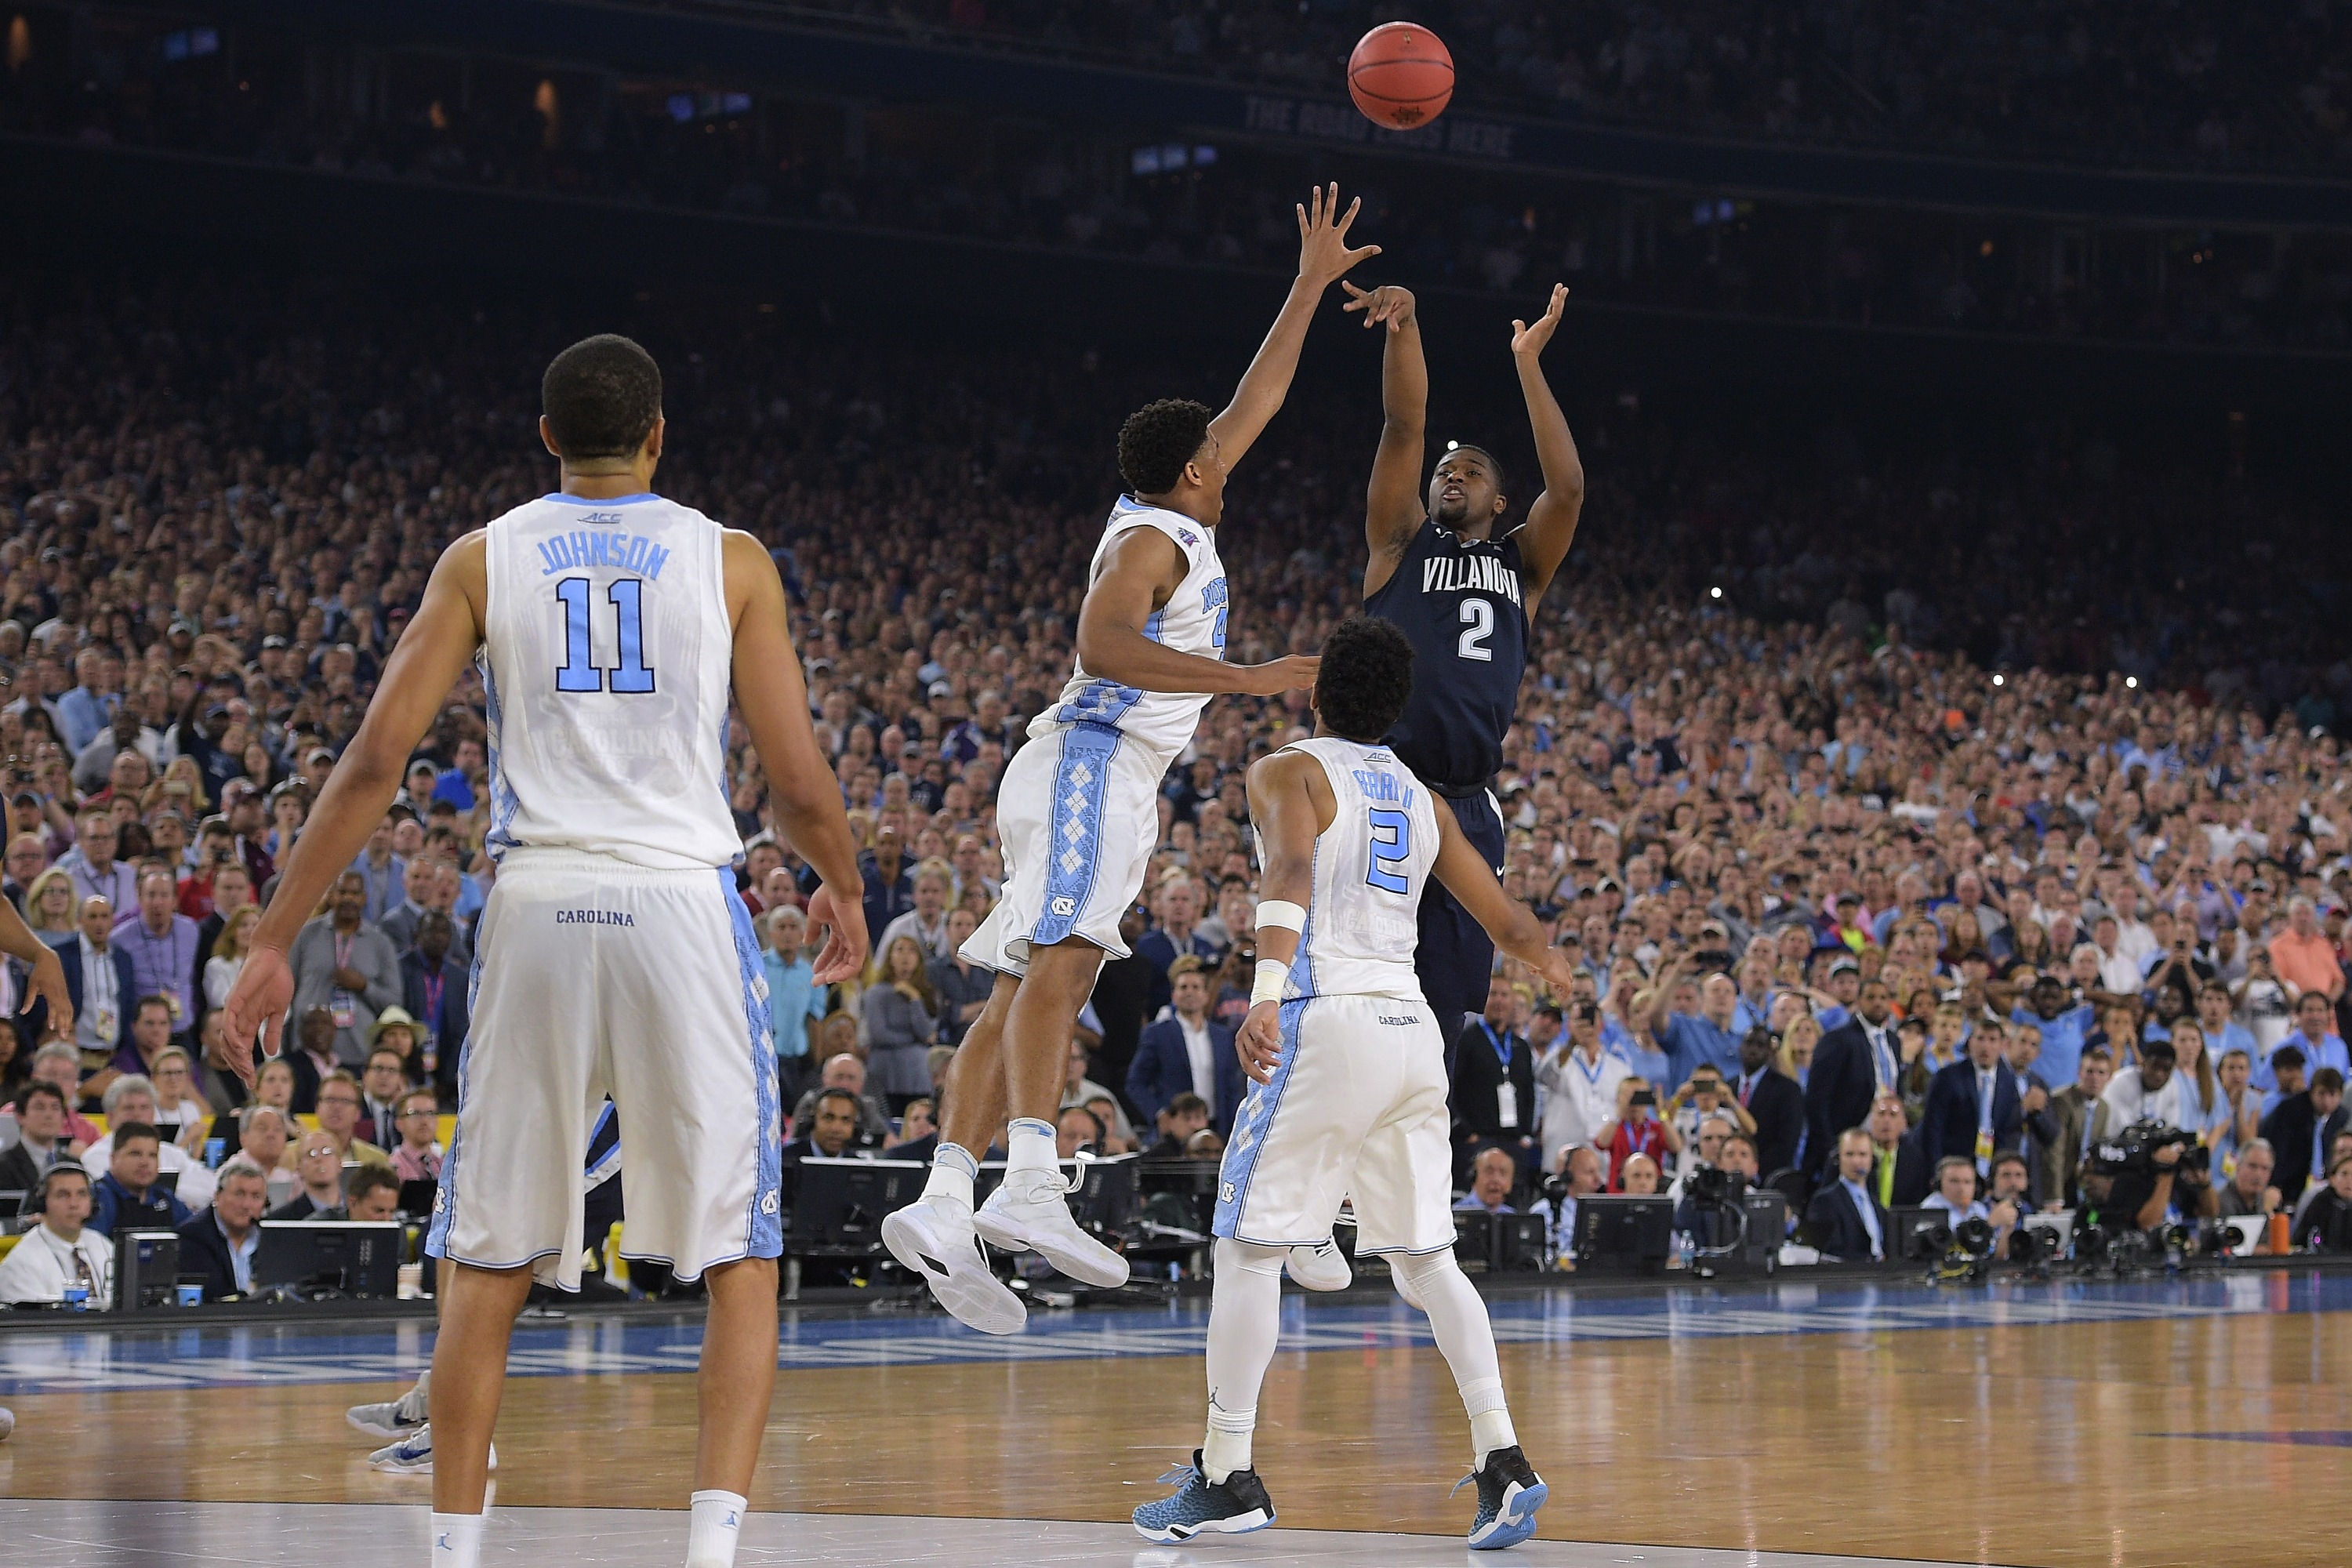 Kris Jenkins #2 of the Villanova Wildcats puts up the game-winning three-point shot as time expires against the North Carolina Tar Heels during the 2016 NCAA Men's Final Four Championship at NRG Stadium on April 04, 2016 in Houston, Texas.